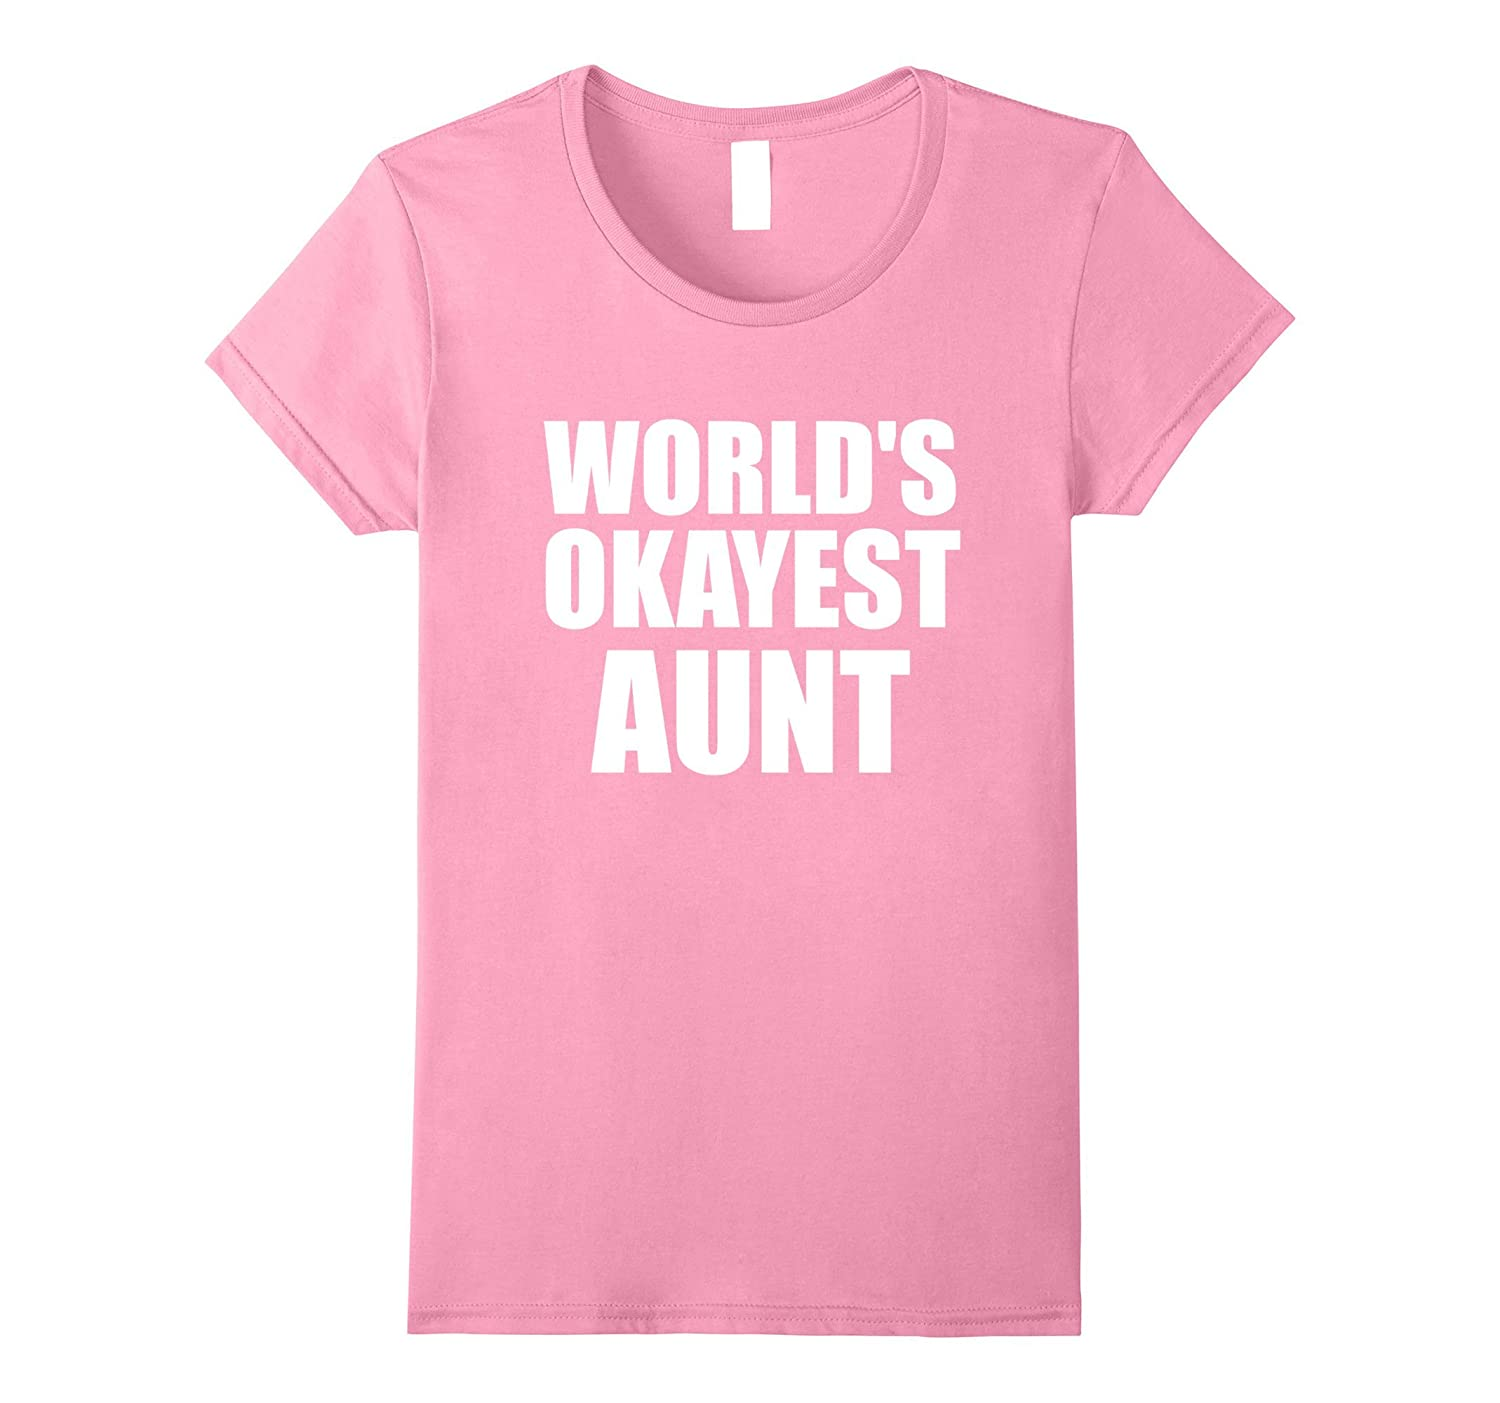 Womens POPULAR - World's Okayest Aunt Shirt For Women - Cute Gift!-TH